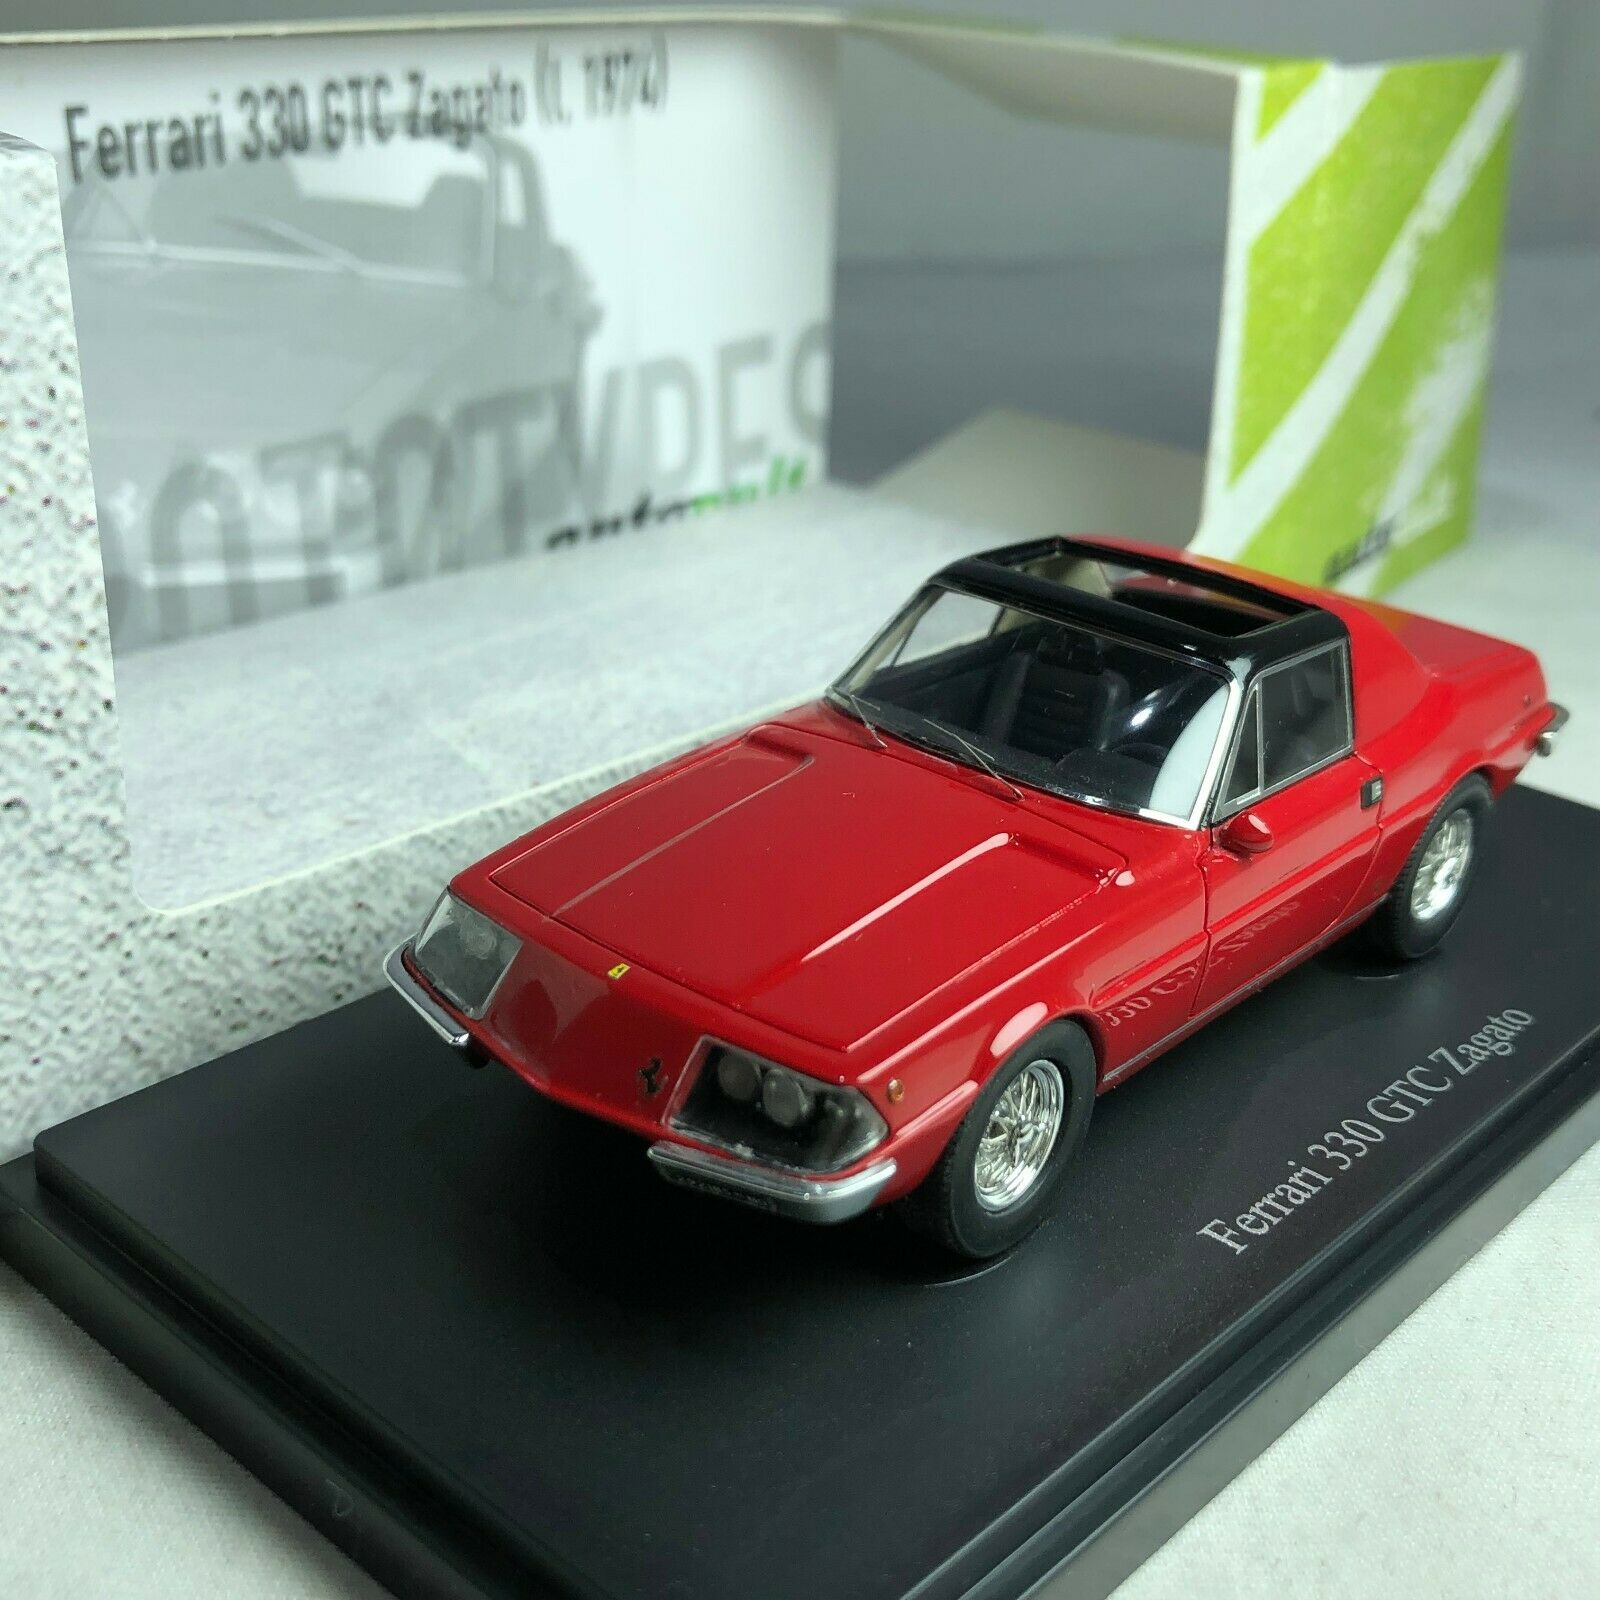 1 43 Autocult Ferrari 330 GTC Zagato Red Ltd 333 pcs